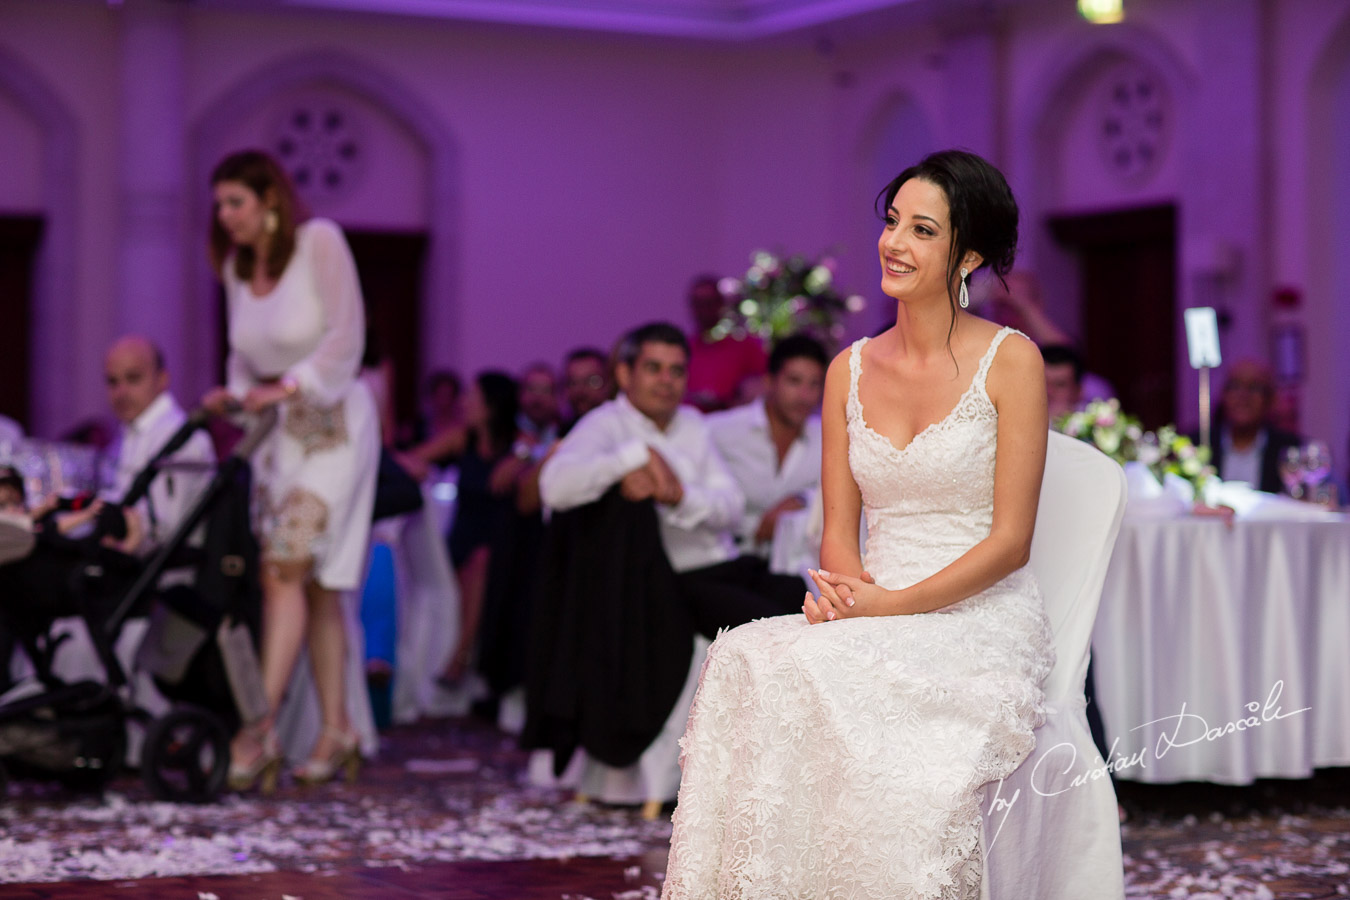 Wedding at Aphrodite Hills in Cyprus - 81